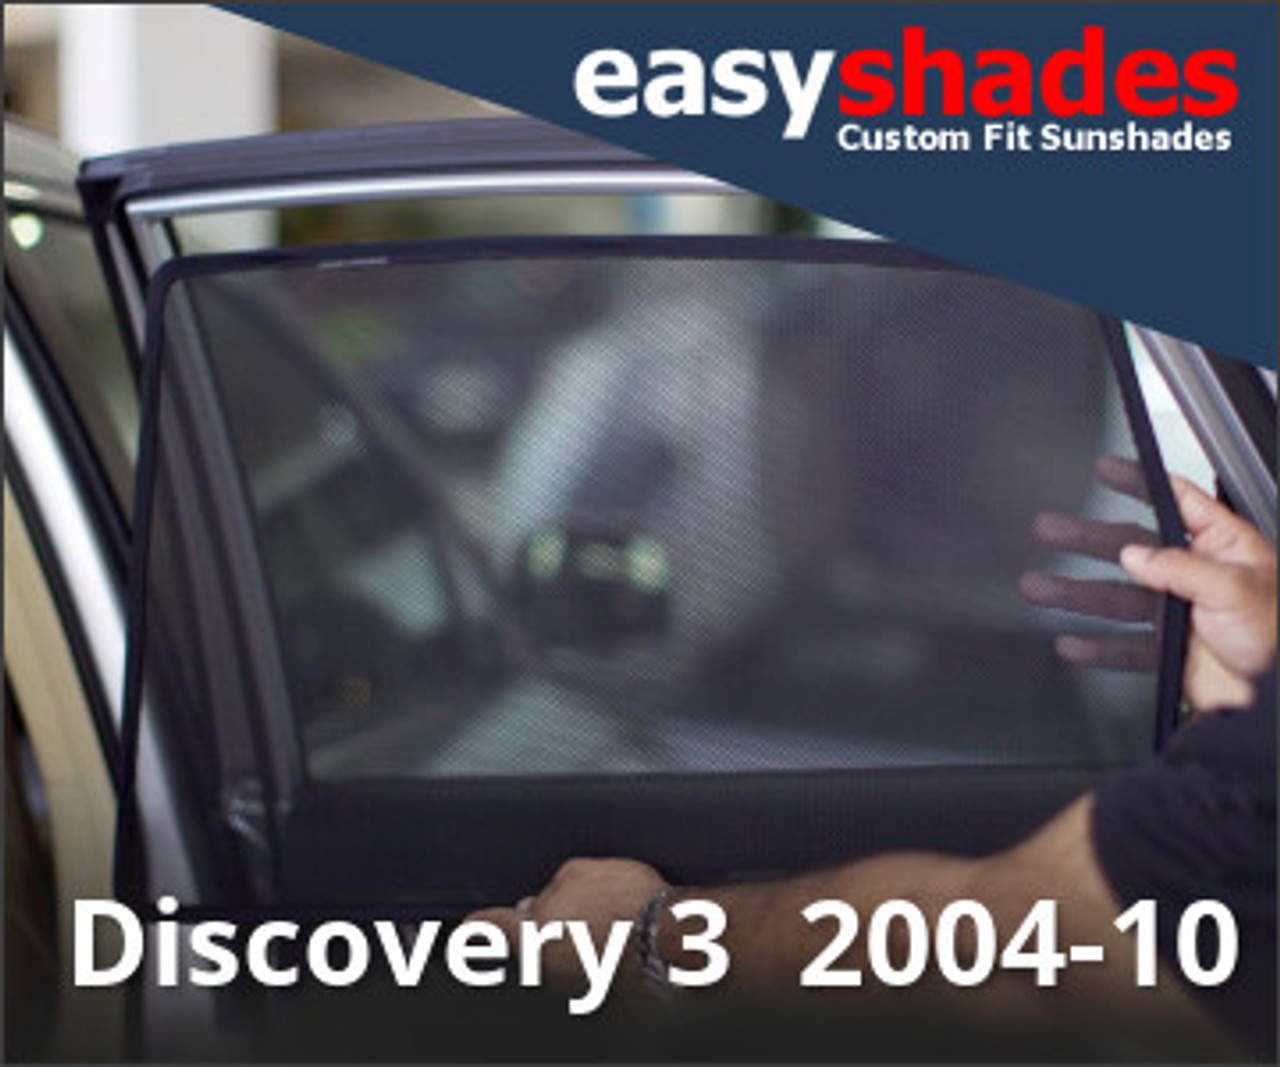 Discovery 3 2004-10